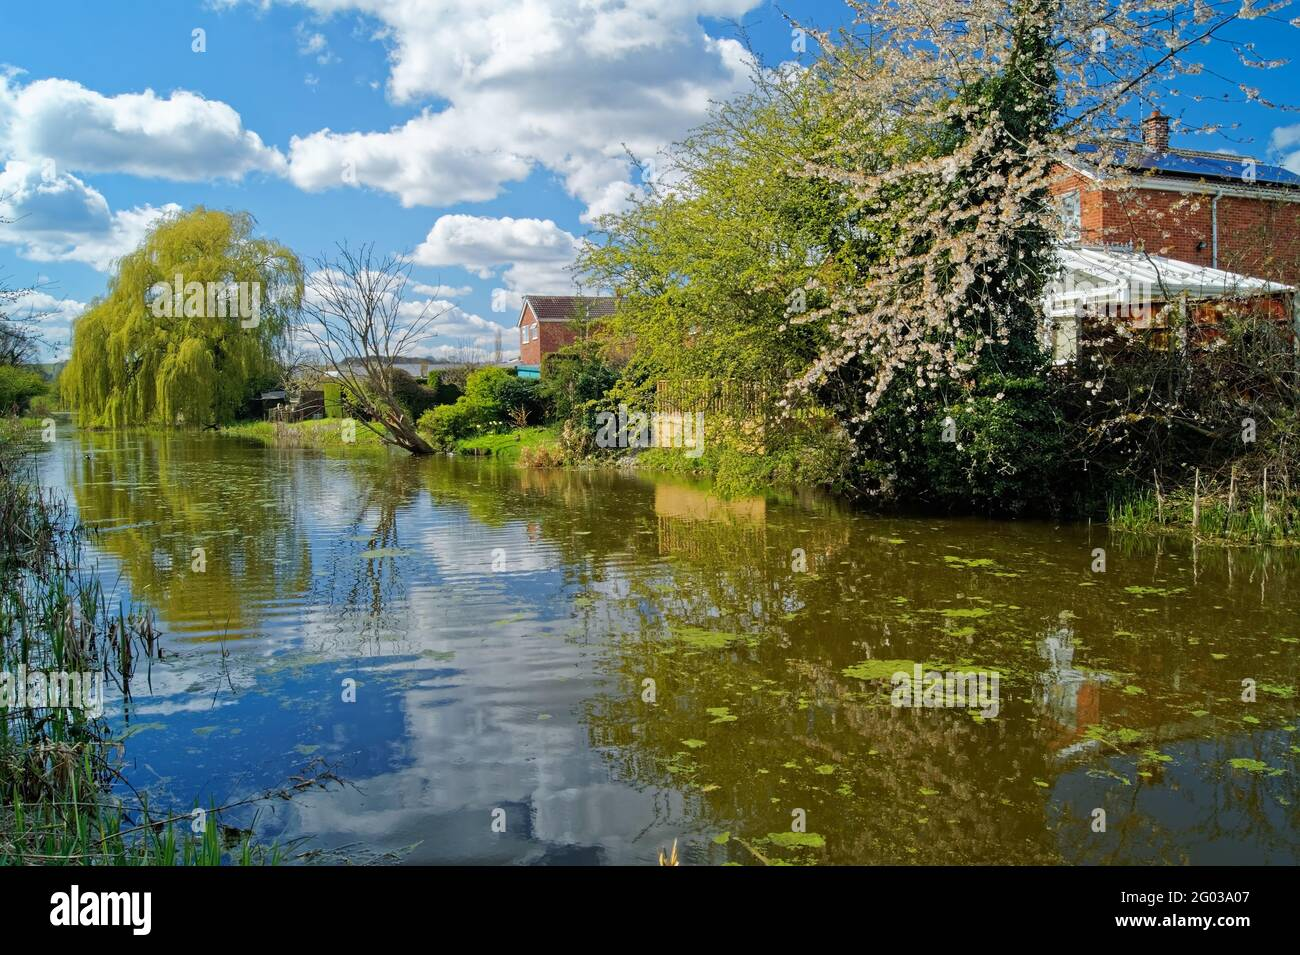 UK,South Yorkshire,Barnsley,Elsecar Canal and Footpath with Blossom in  bloom Stock Photo